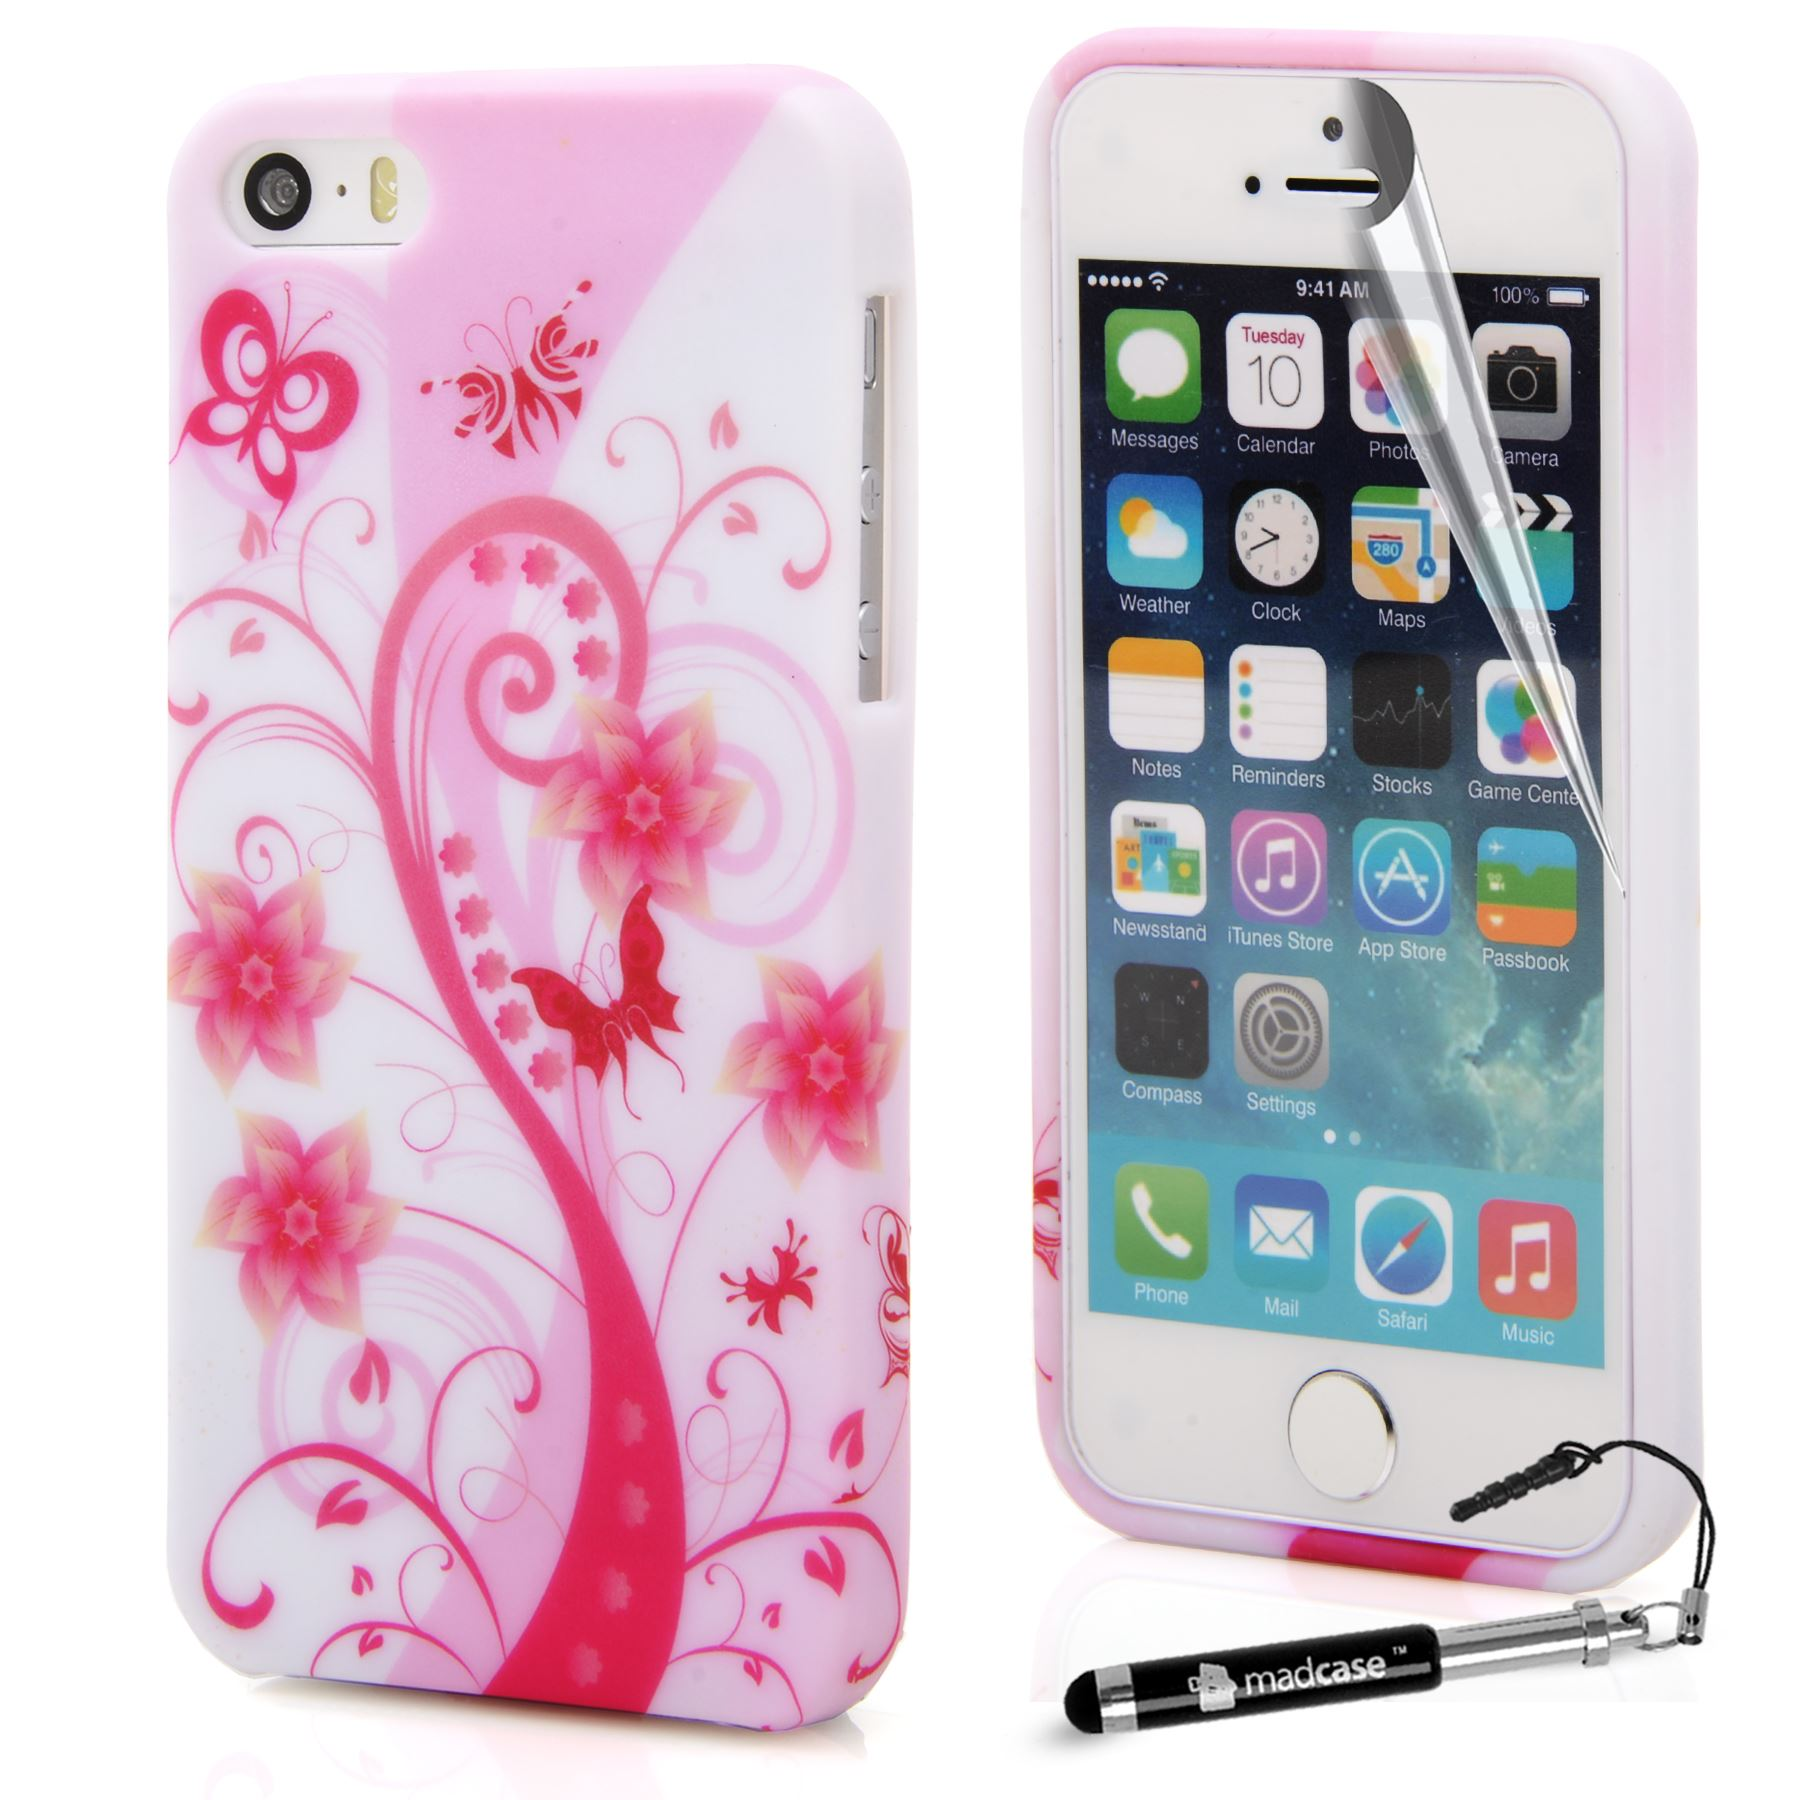 watch 6e152 f49d9 Details about For Apple iPhone SE 5S 5 Case Cool Designs Print Silicone Gel  Cover